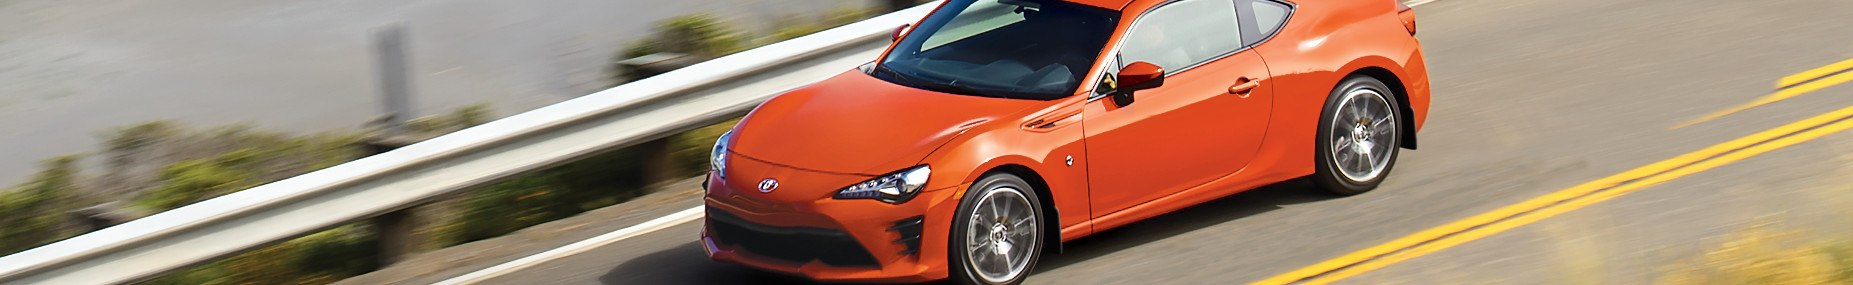 Toyota86-Feature